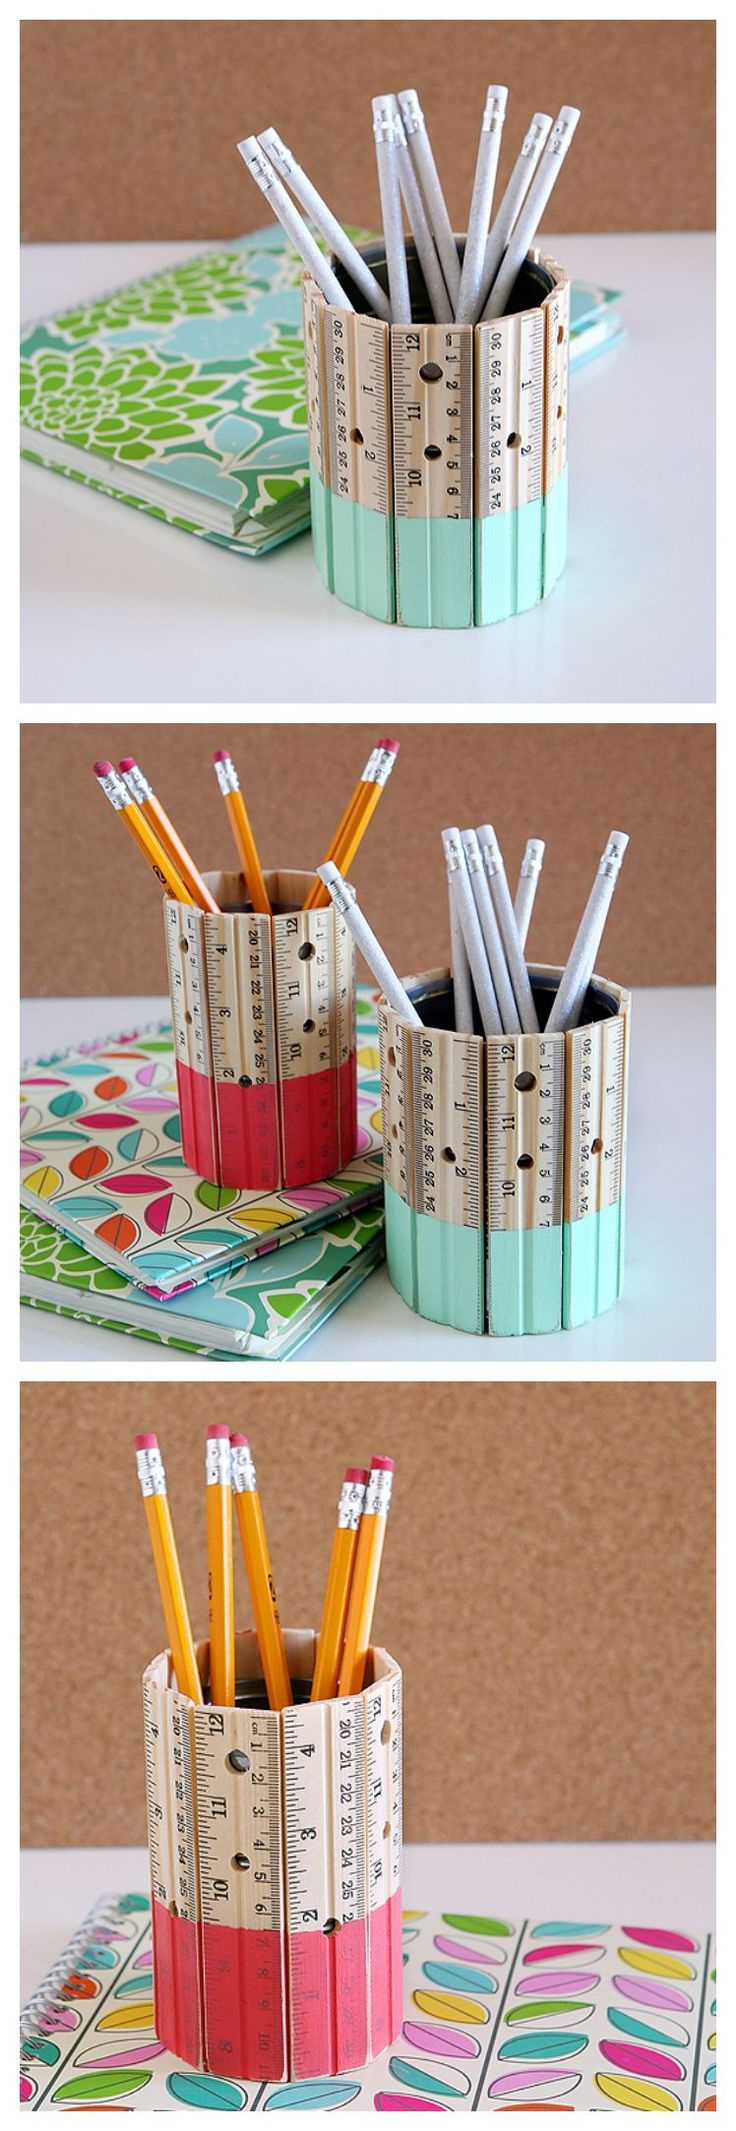 create and craft best 25 pencil holders ideas on pencil holder 1803